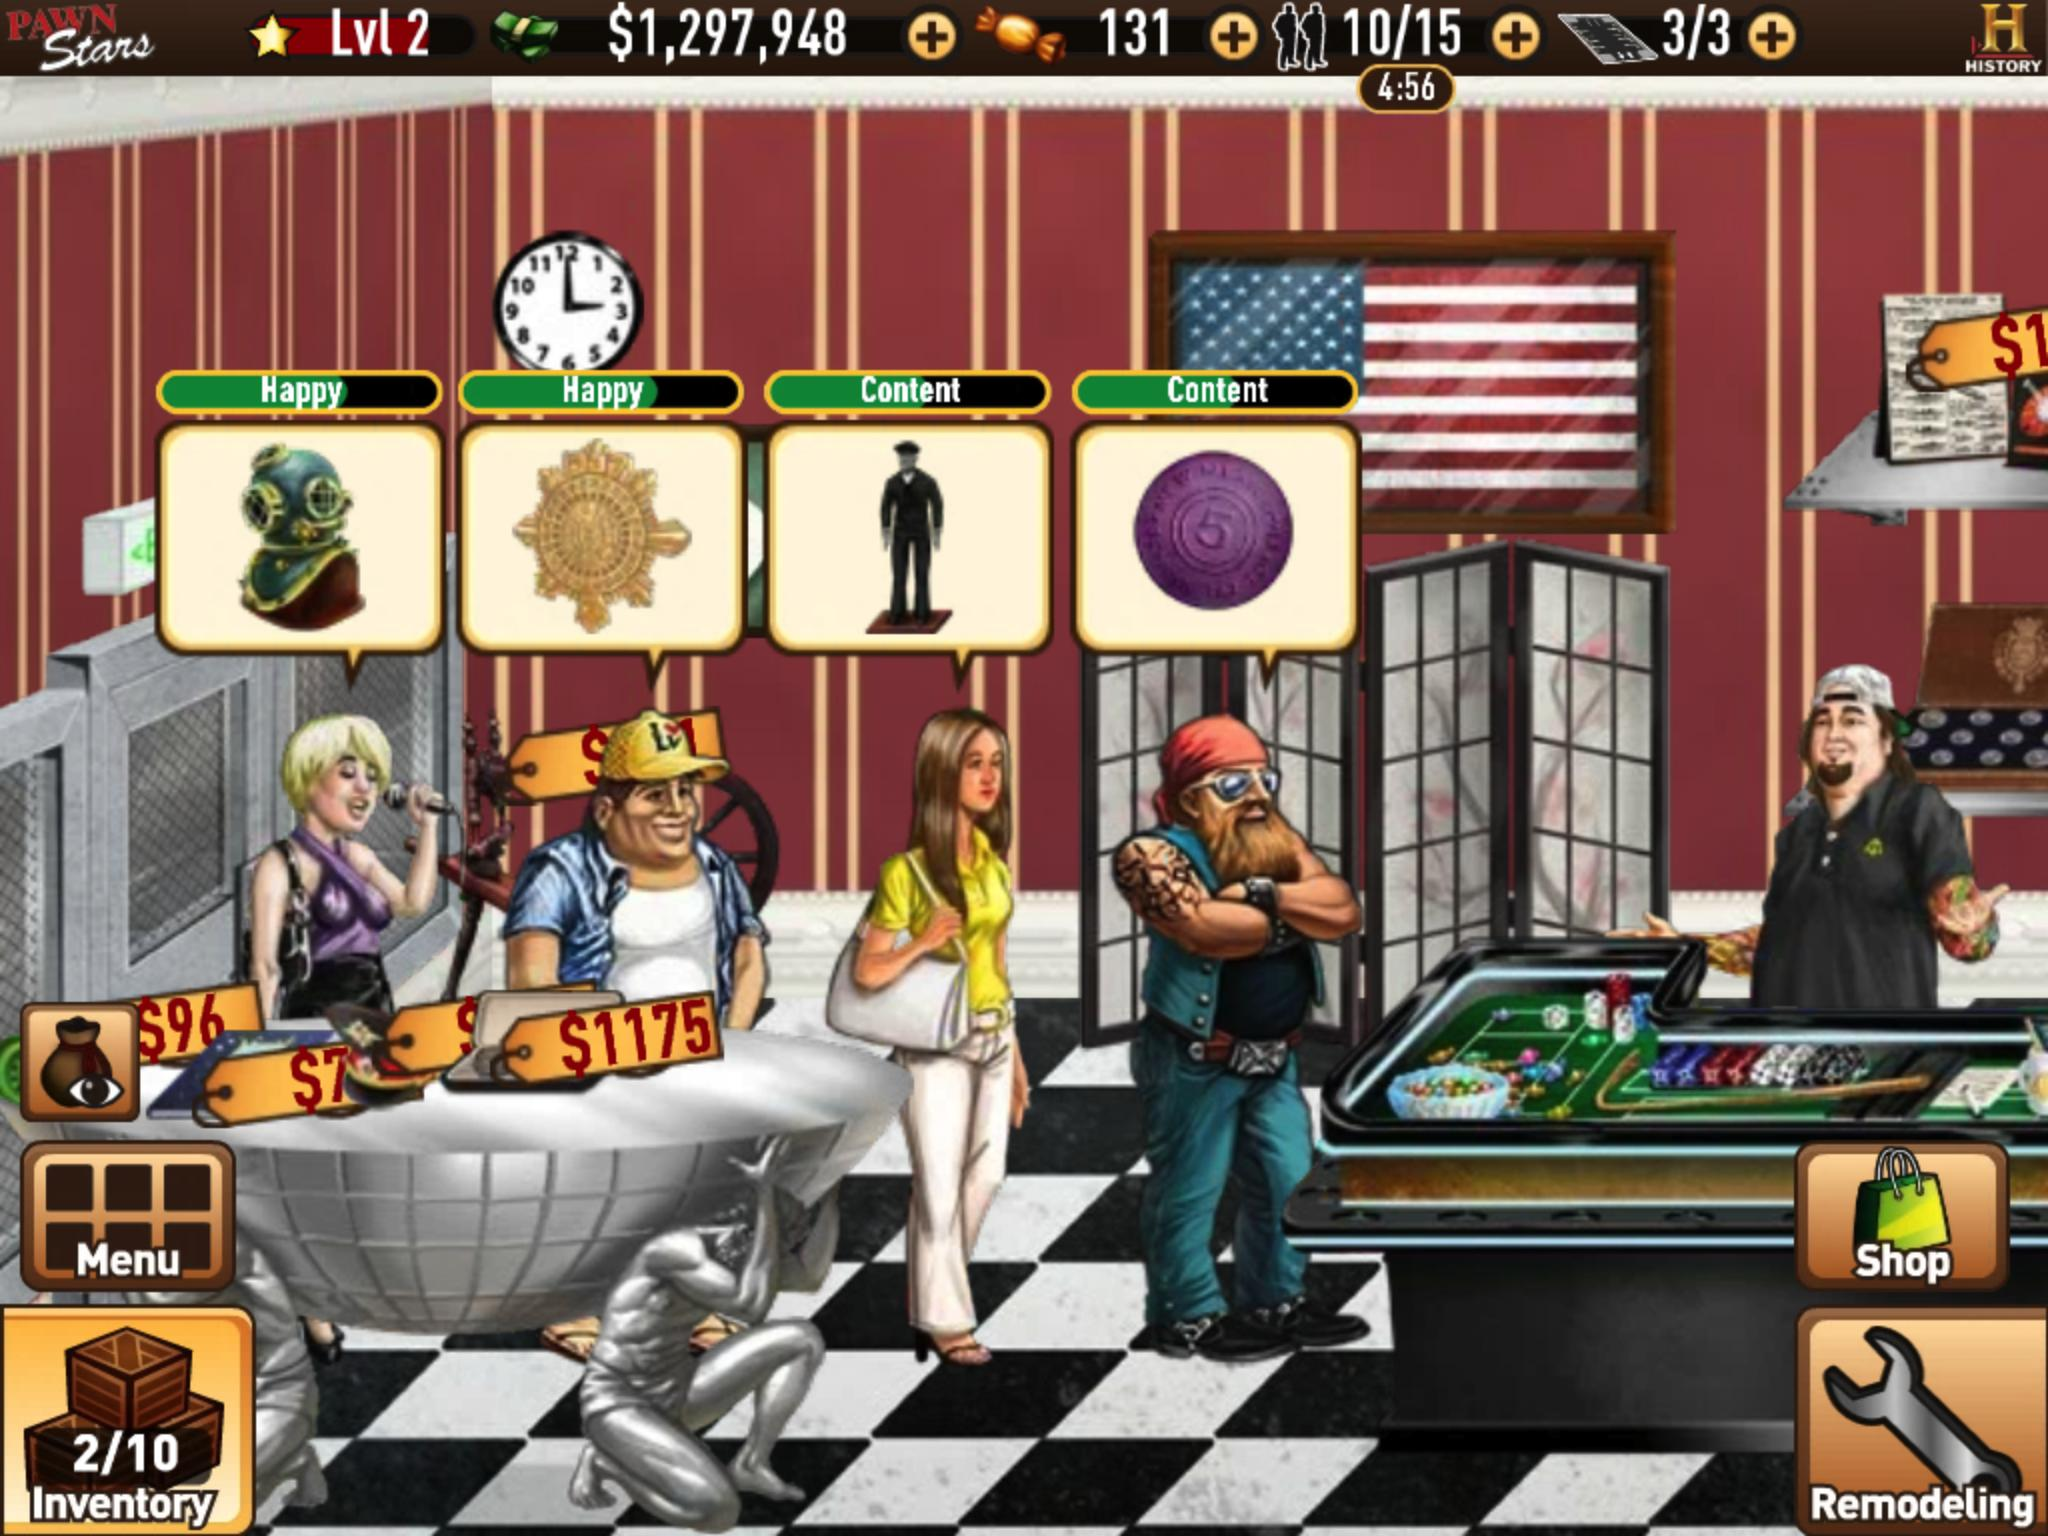 Pawn stars: the game online game on facebook: overview.